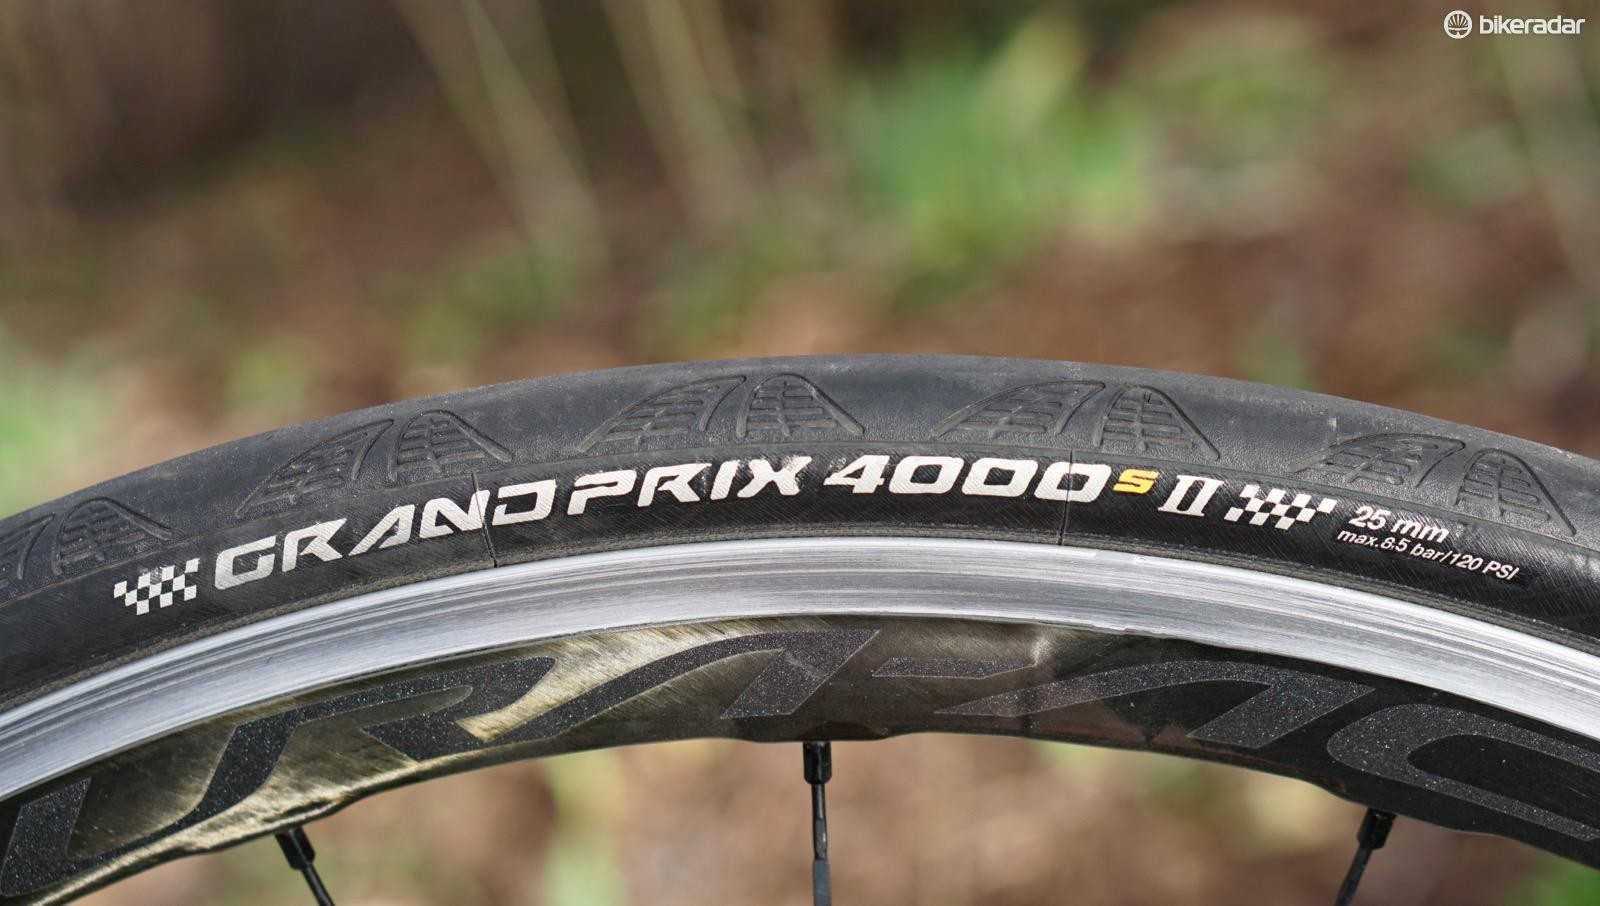 The Continental Grand Prix 4000 S II has been a stalwart clincher for years